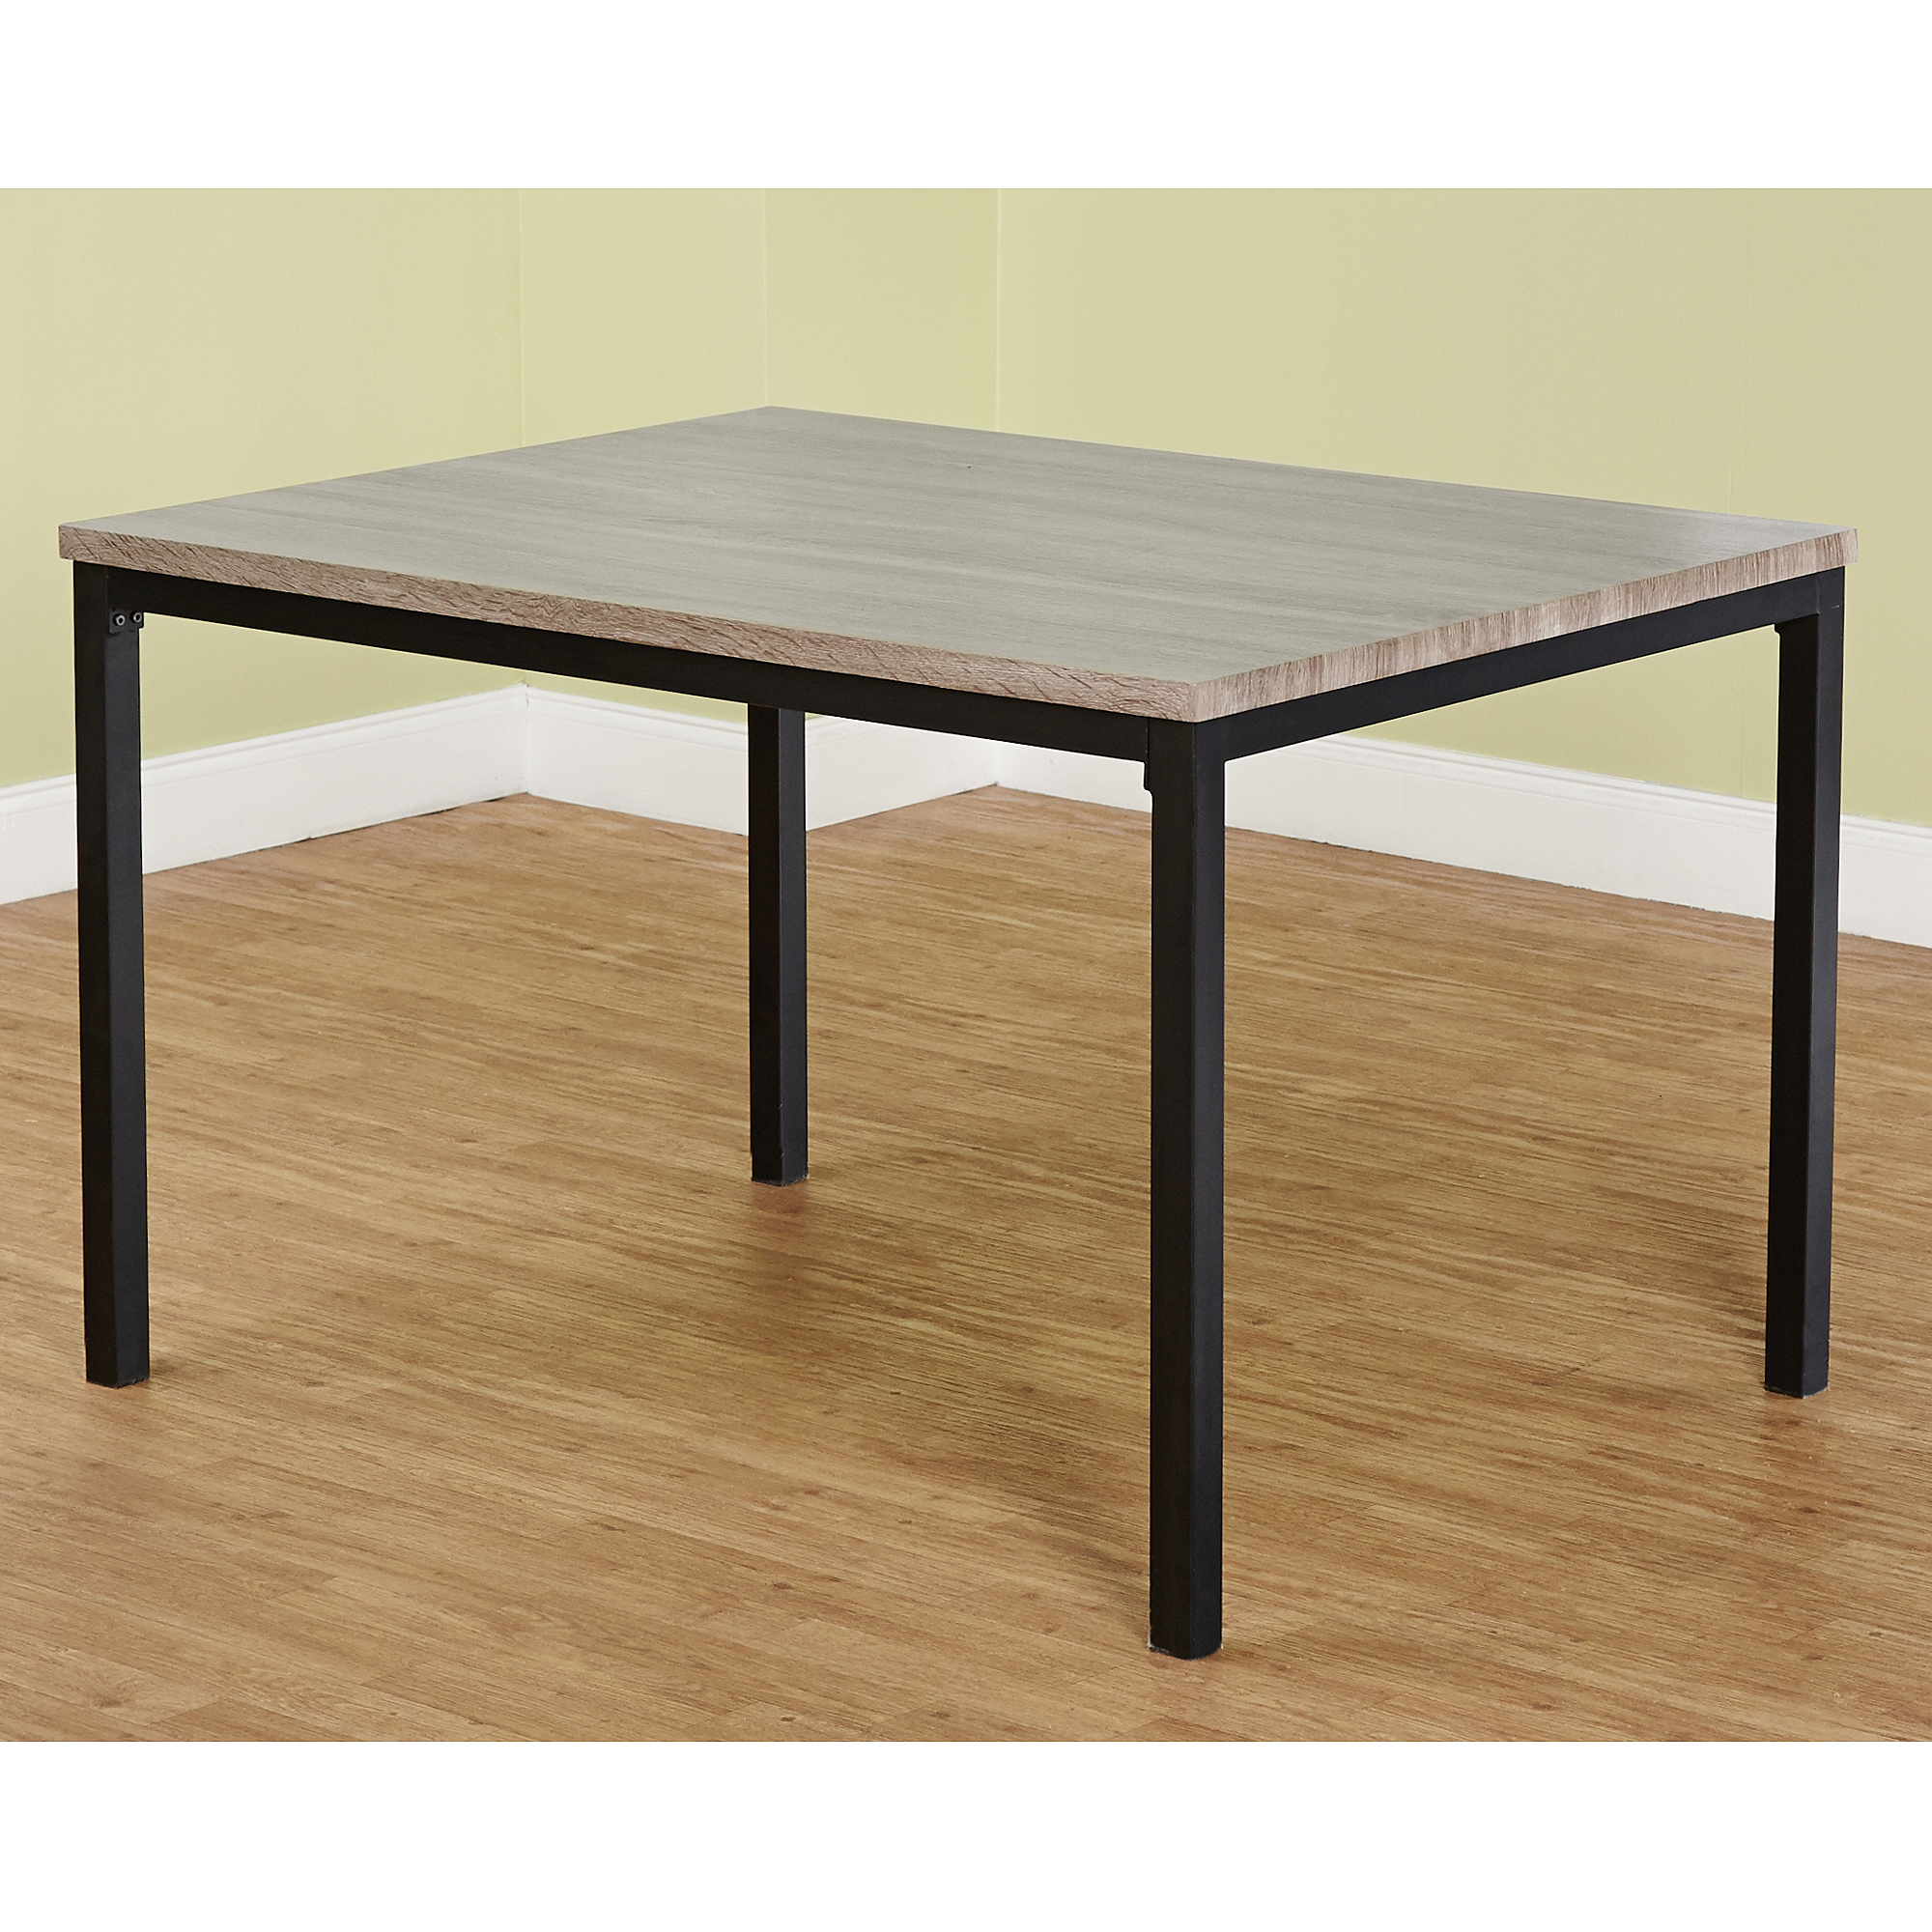 Jaxx Collection Dining Table, Black/Gray